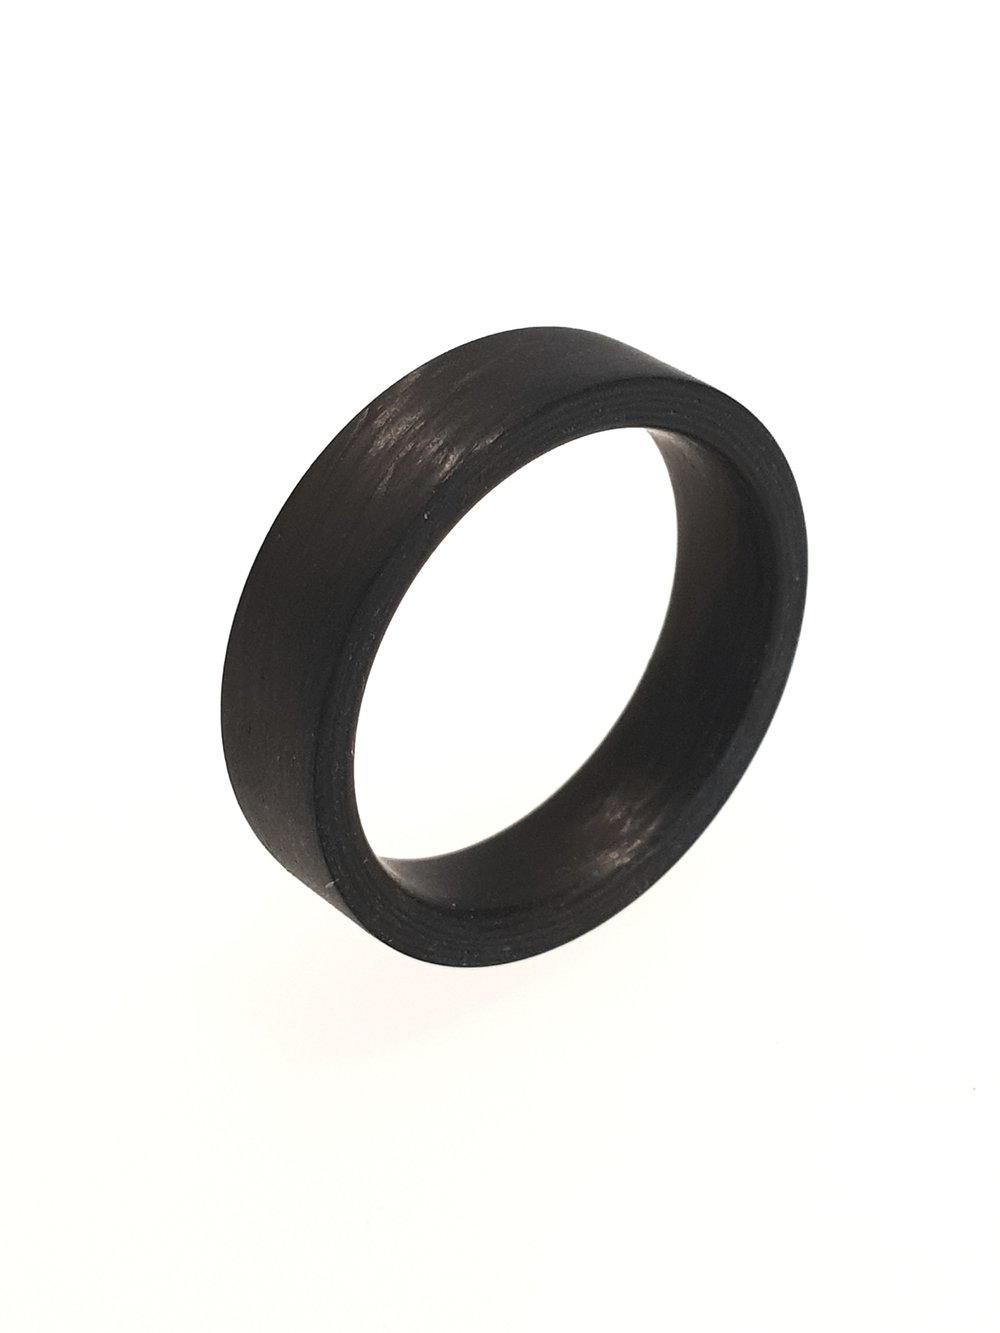 Carbon Fibre Ring, 6mm Plain Band    Titan Factory (Model: 59304/002/000/N000)   Current Stock Size: T  Stock Code: E9805  £75